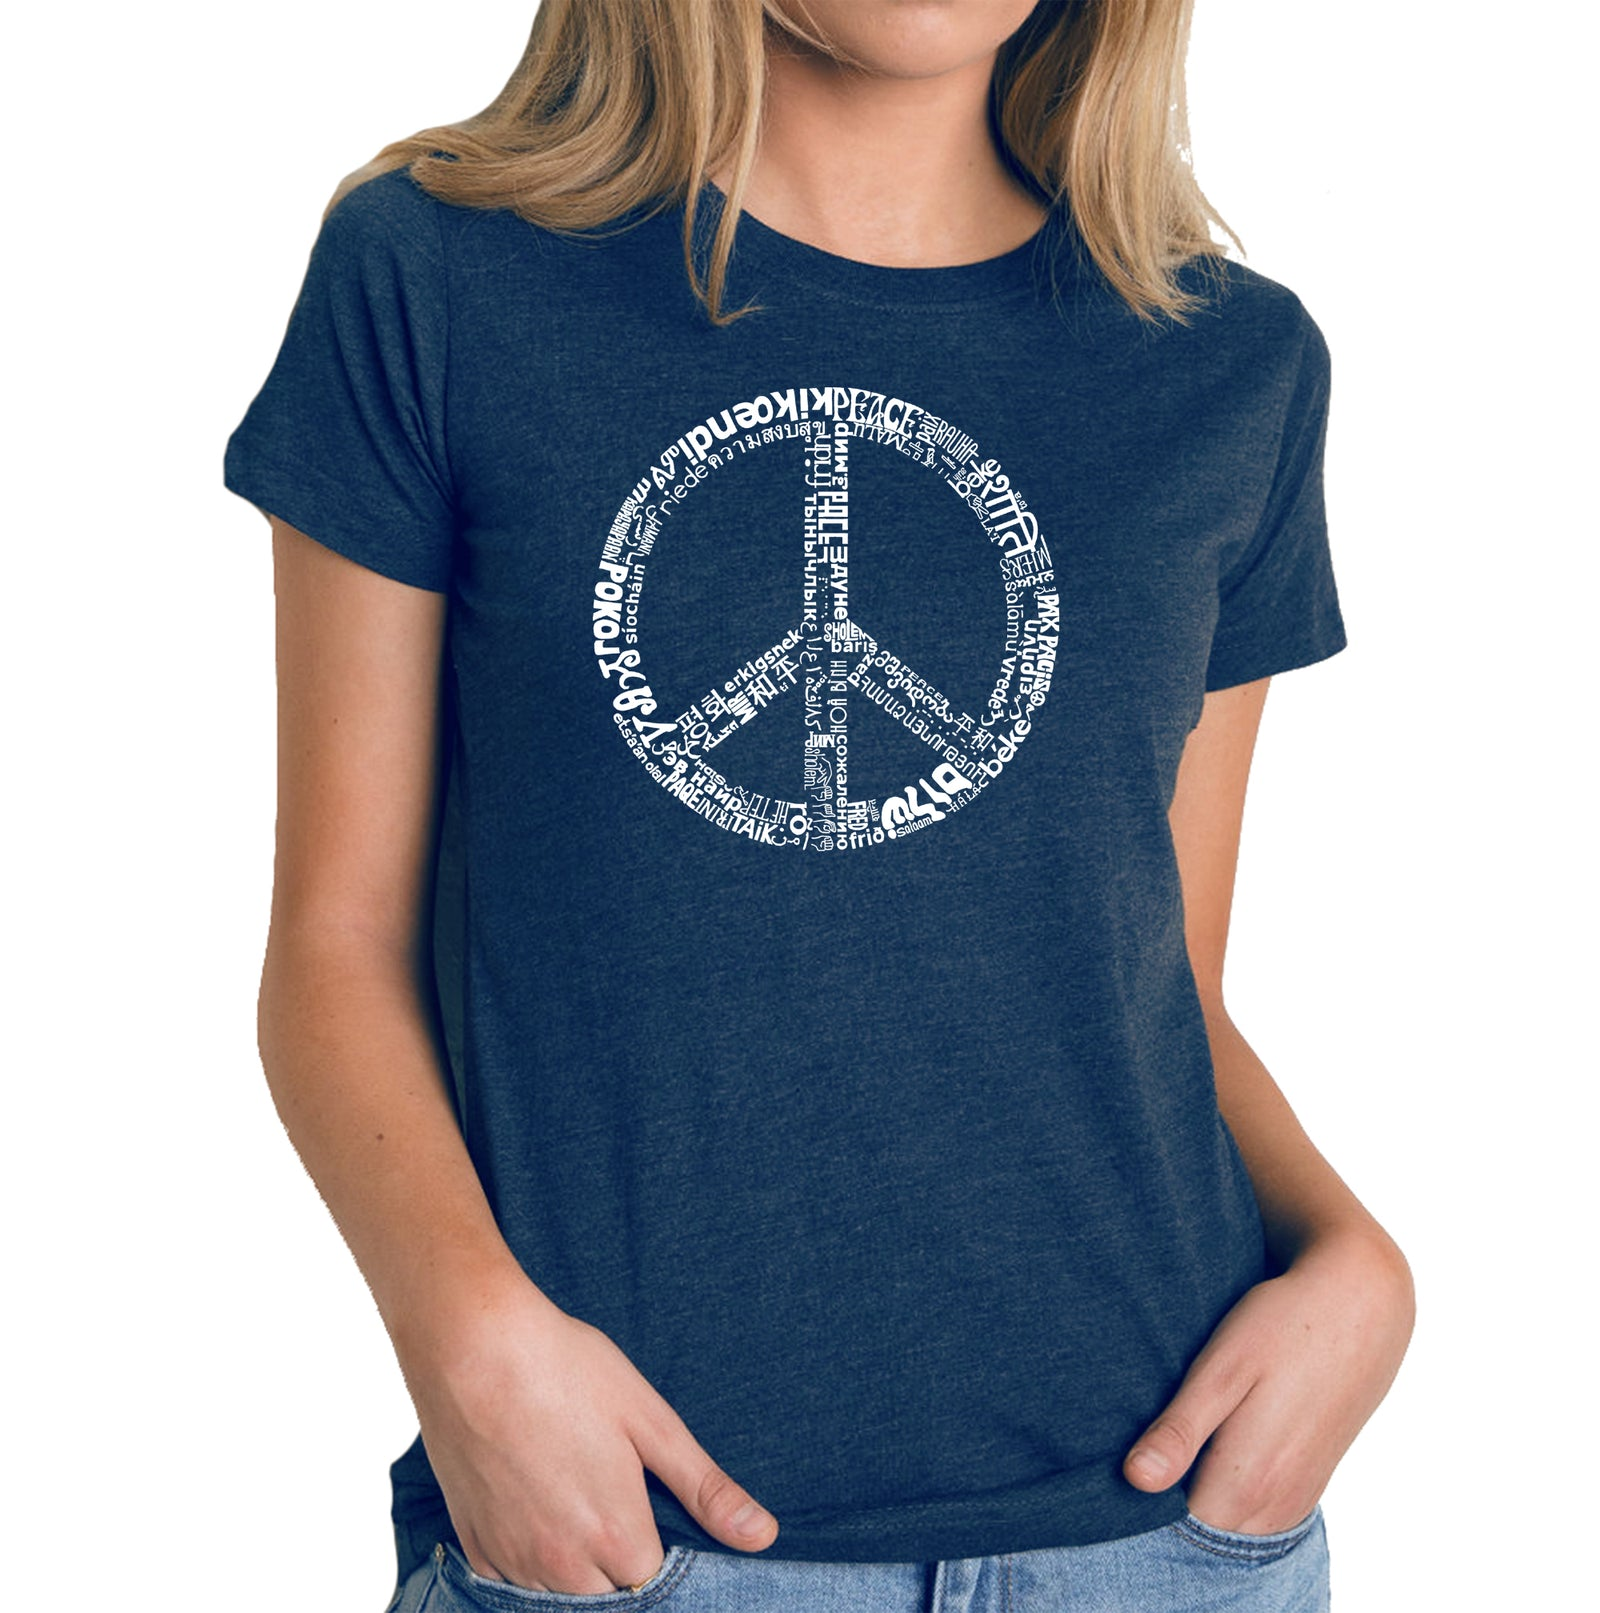 Women's Premium Blend Word Art T-shirt - THE WORD PEACE IN 77 LANGUAGES